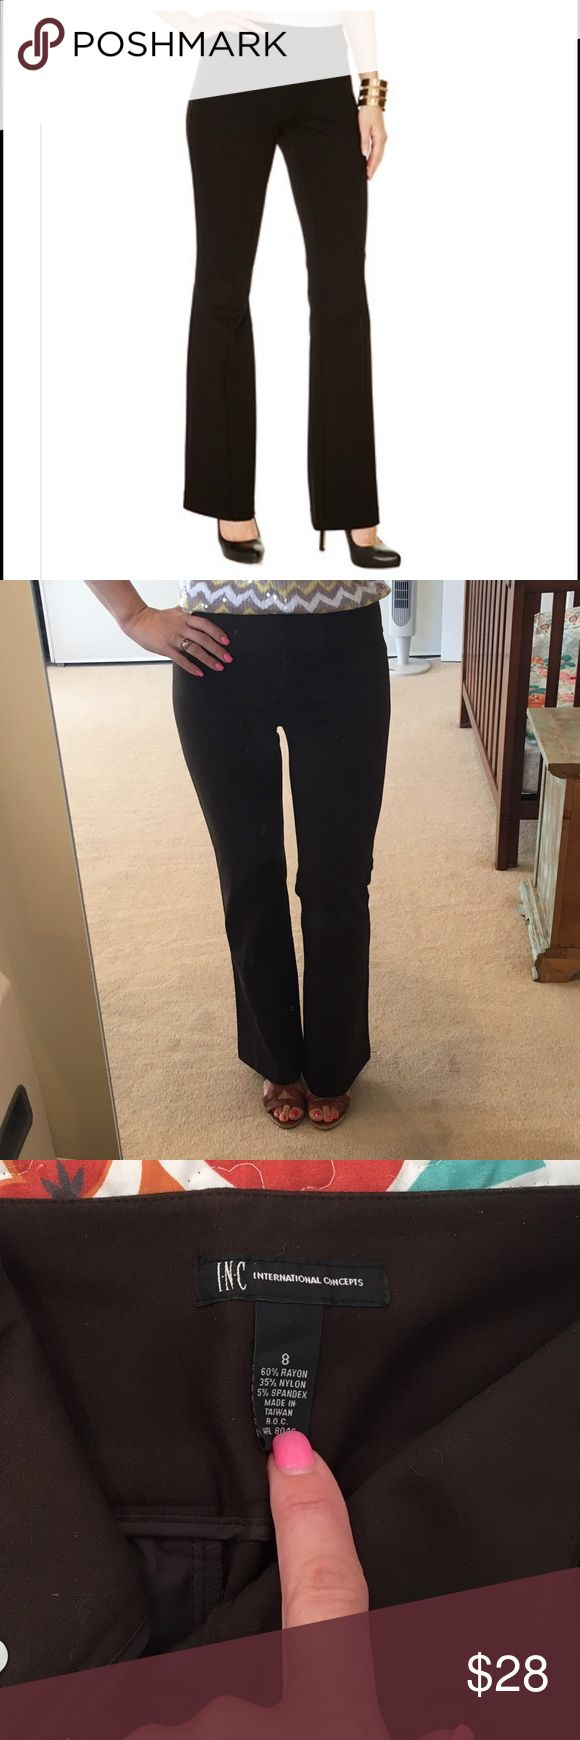 """INC International Concepts Brown Ponte Pants -sz 8 INC's dark chocolate brown bootcut ponte pants are perfect for that curvy fit! They hug your hips before slightly flaring out into a chic bootcut silhouette.  Mid-rise and stretchy, these business casual pants are perfect for days when you have a little extra tummy to hide :).  Slit pockets in front and back are non-functional - only for design purposes.  Worn MAYBE twice! 17"""" waist, 32"""" inseam, 10"""" rise.  Bundle and save big! No trades…"""